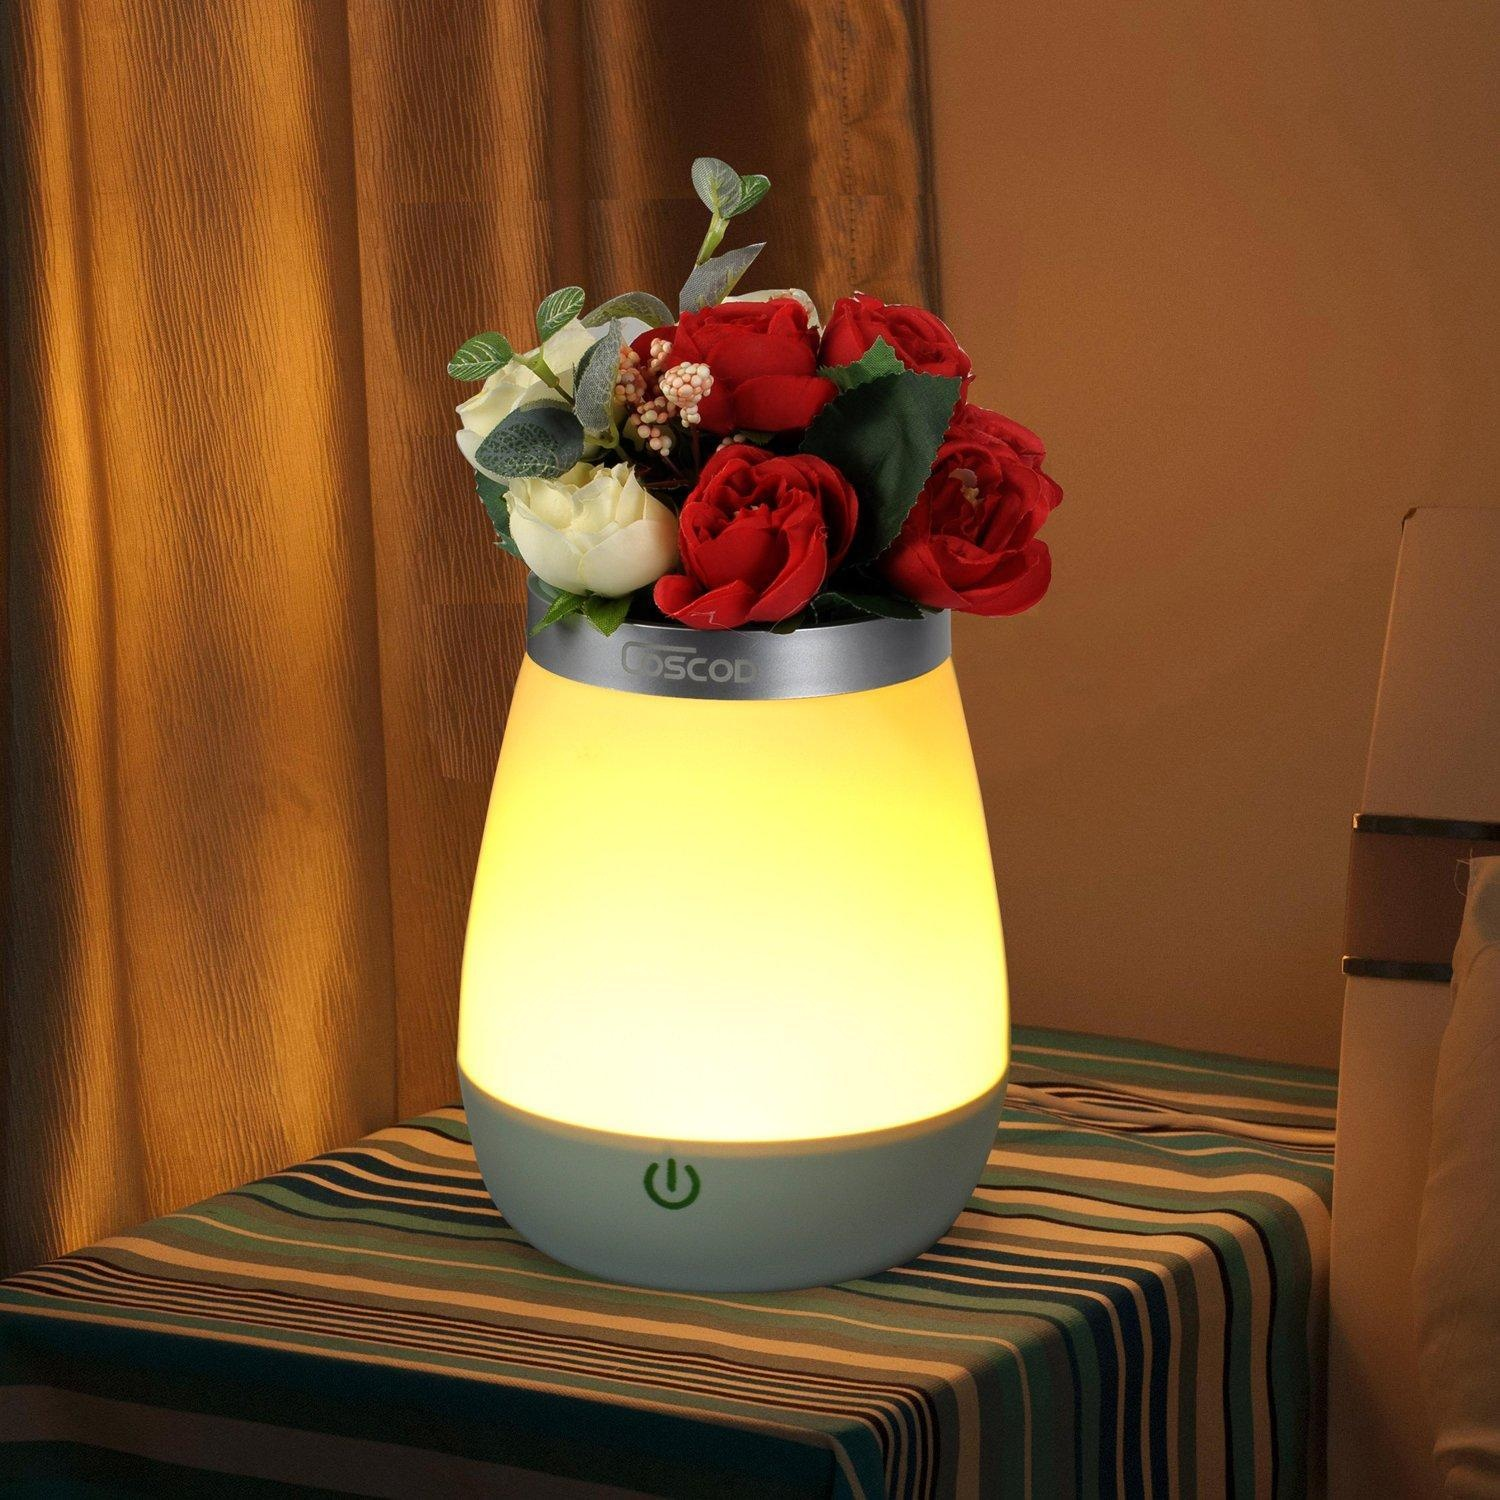 Red Night Light For Nursery Online Store Romantic Vase Lamp Coscod Decorative Mood